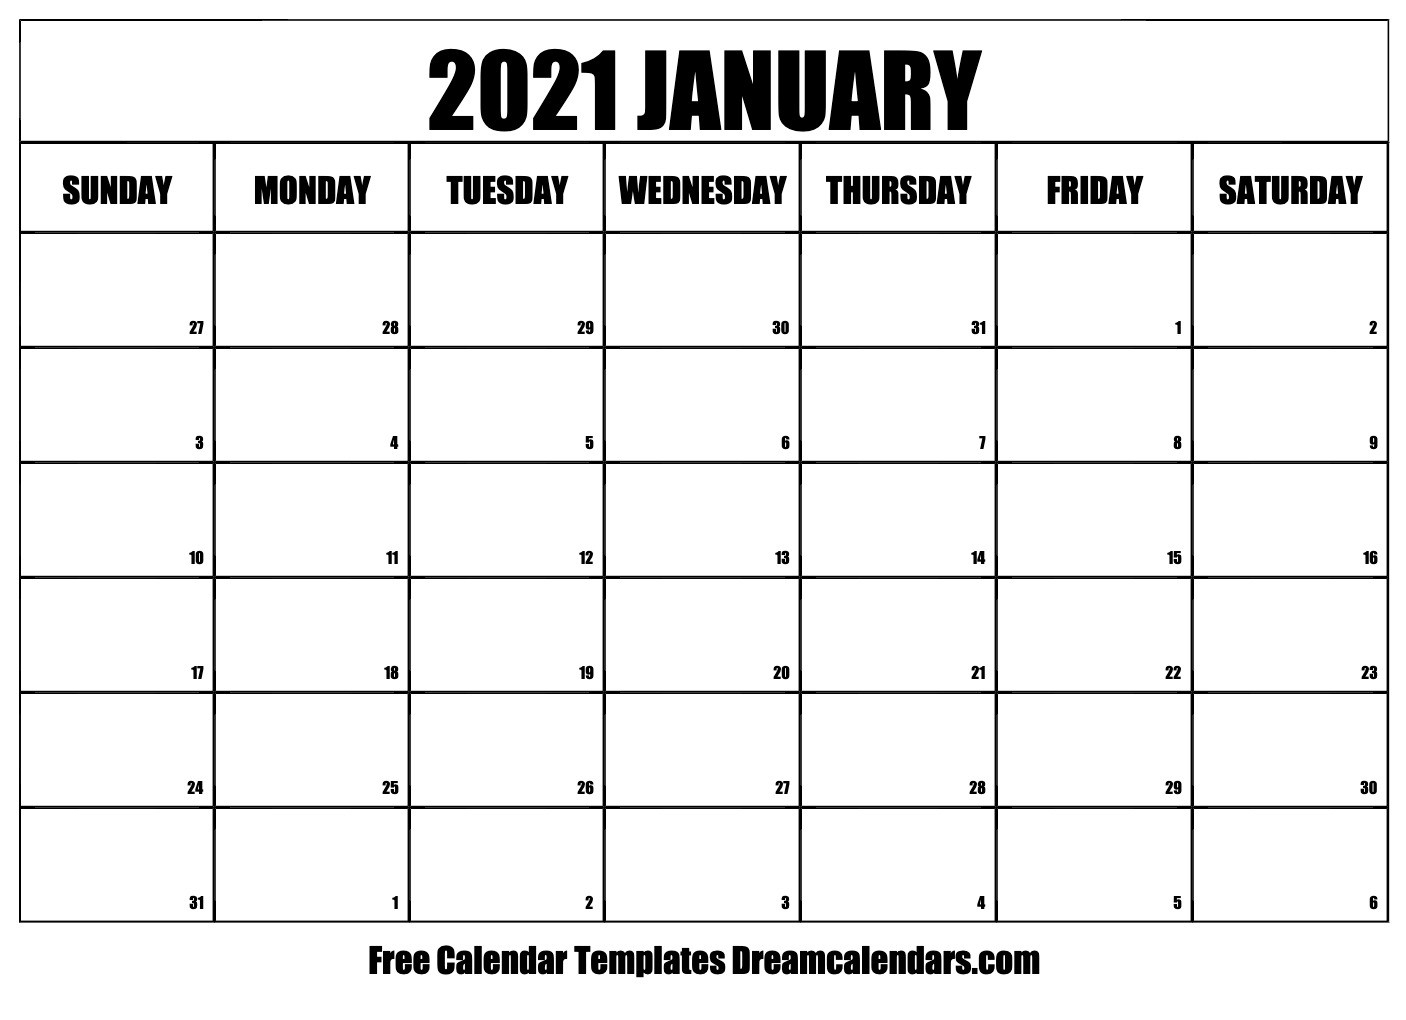 January 2021 Calendar | Free Blank Printable Templates  2021 Calendar Free Printable Bills